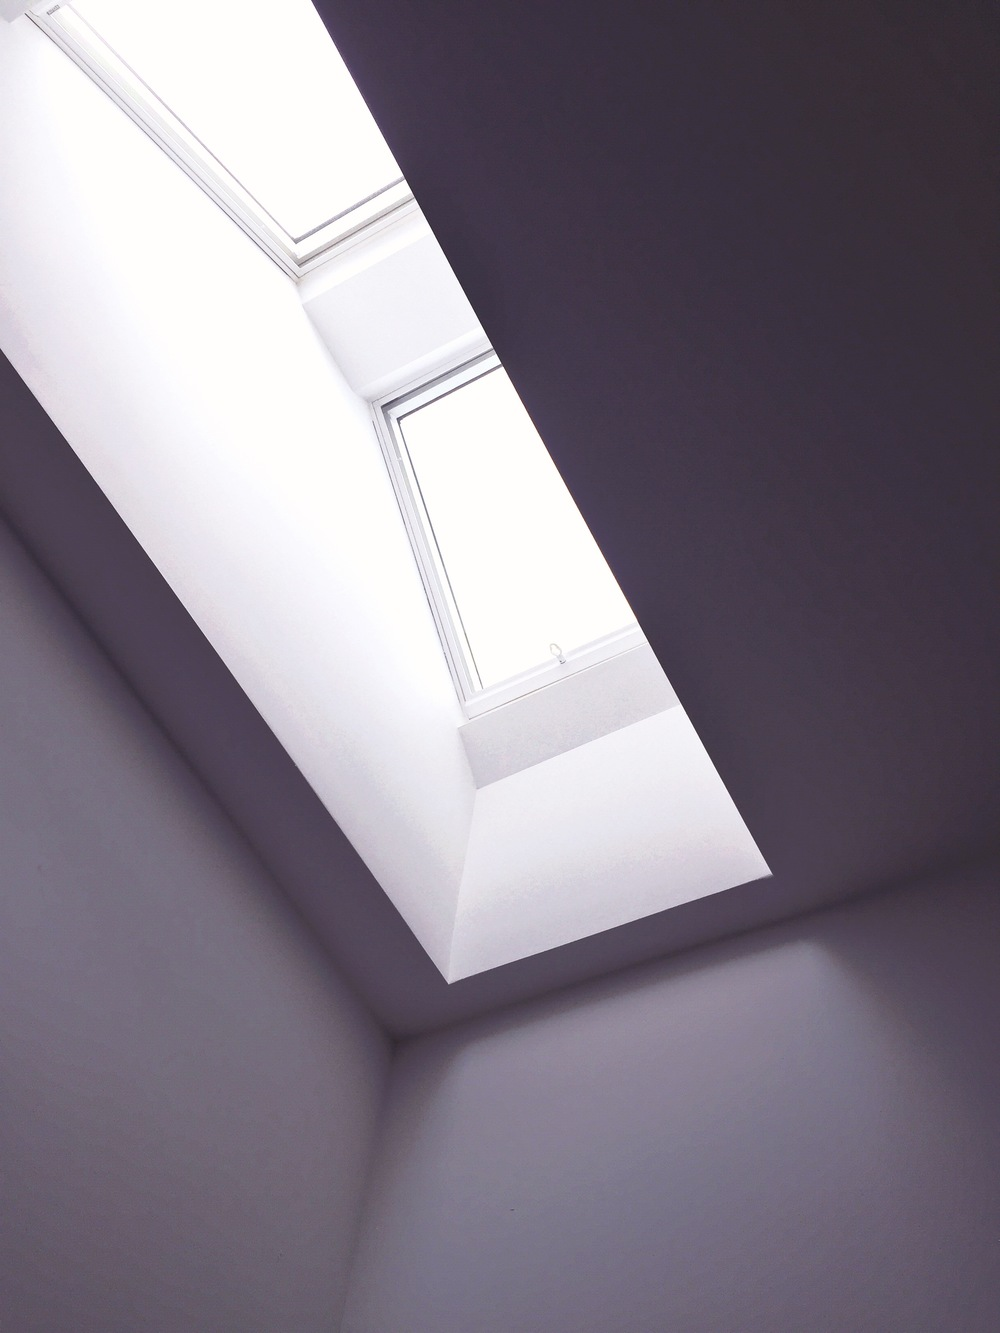 Take a photo of your workspace:  This is the skylight in my office. Very James Turrell, no?